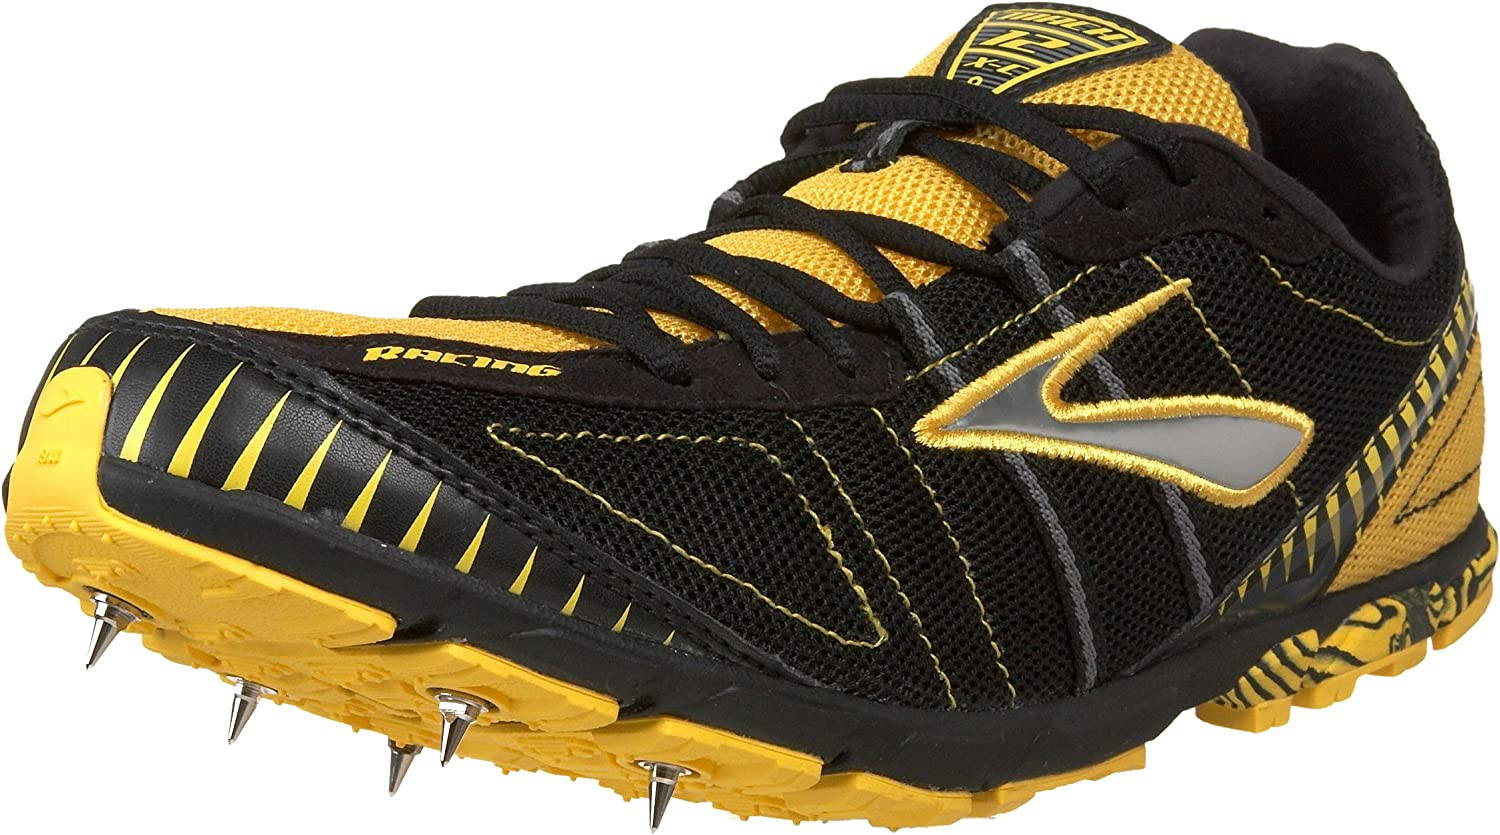 Brooks Mach 12 12 Cross Country Laufen Spitzen  das billigste